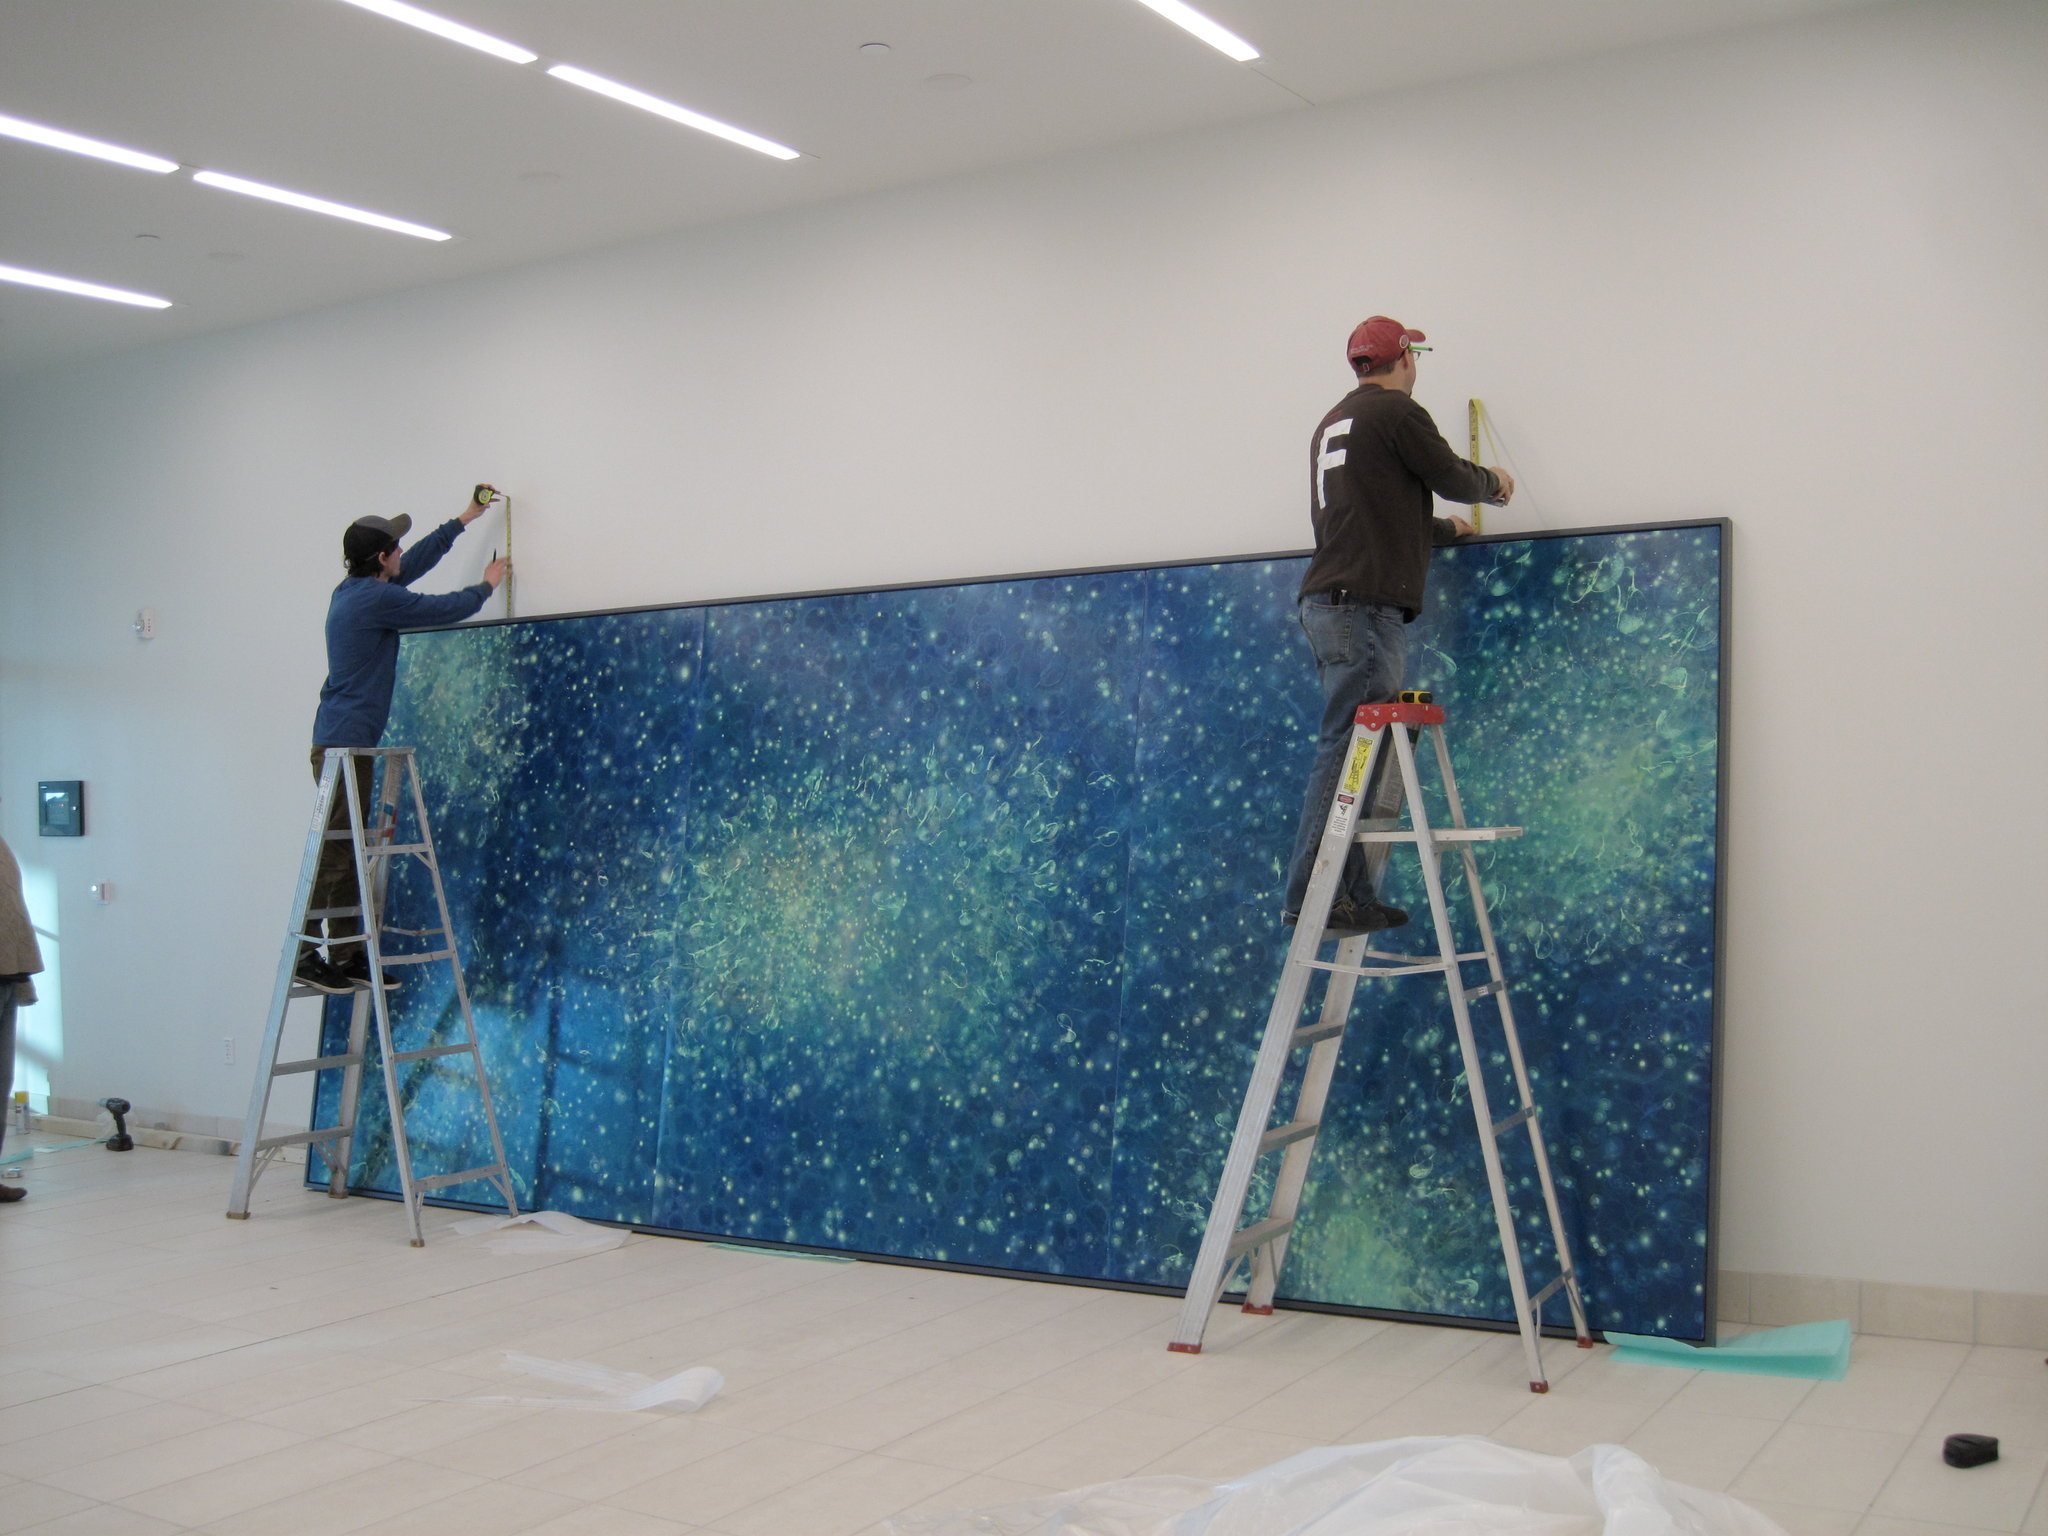 Installation Of Available Light